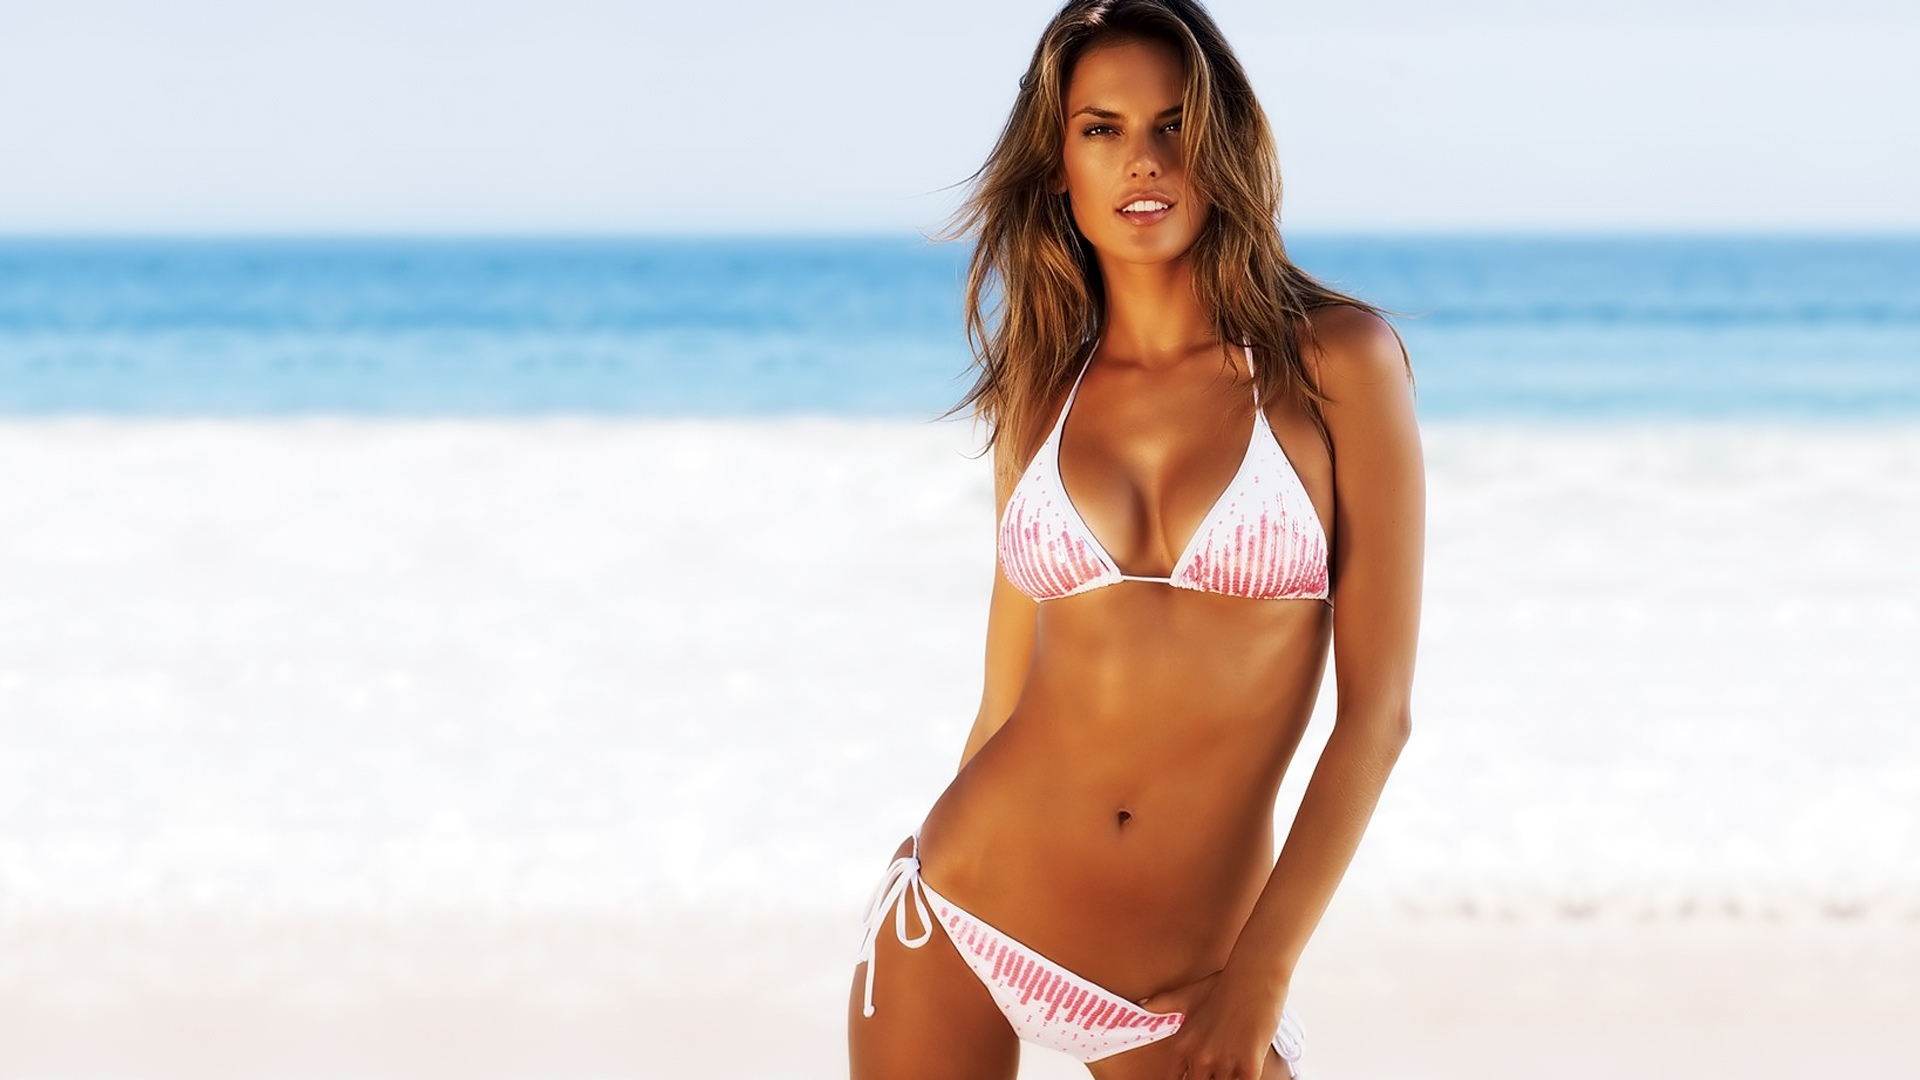 Download Alessandra Ambrosio   HD Wallpaper